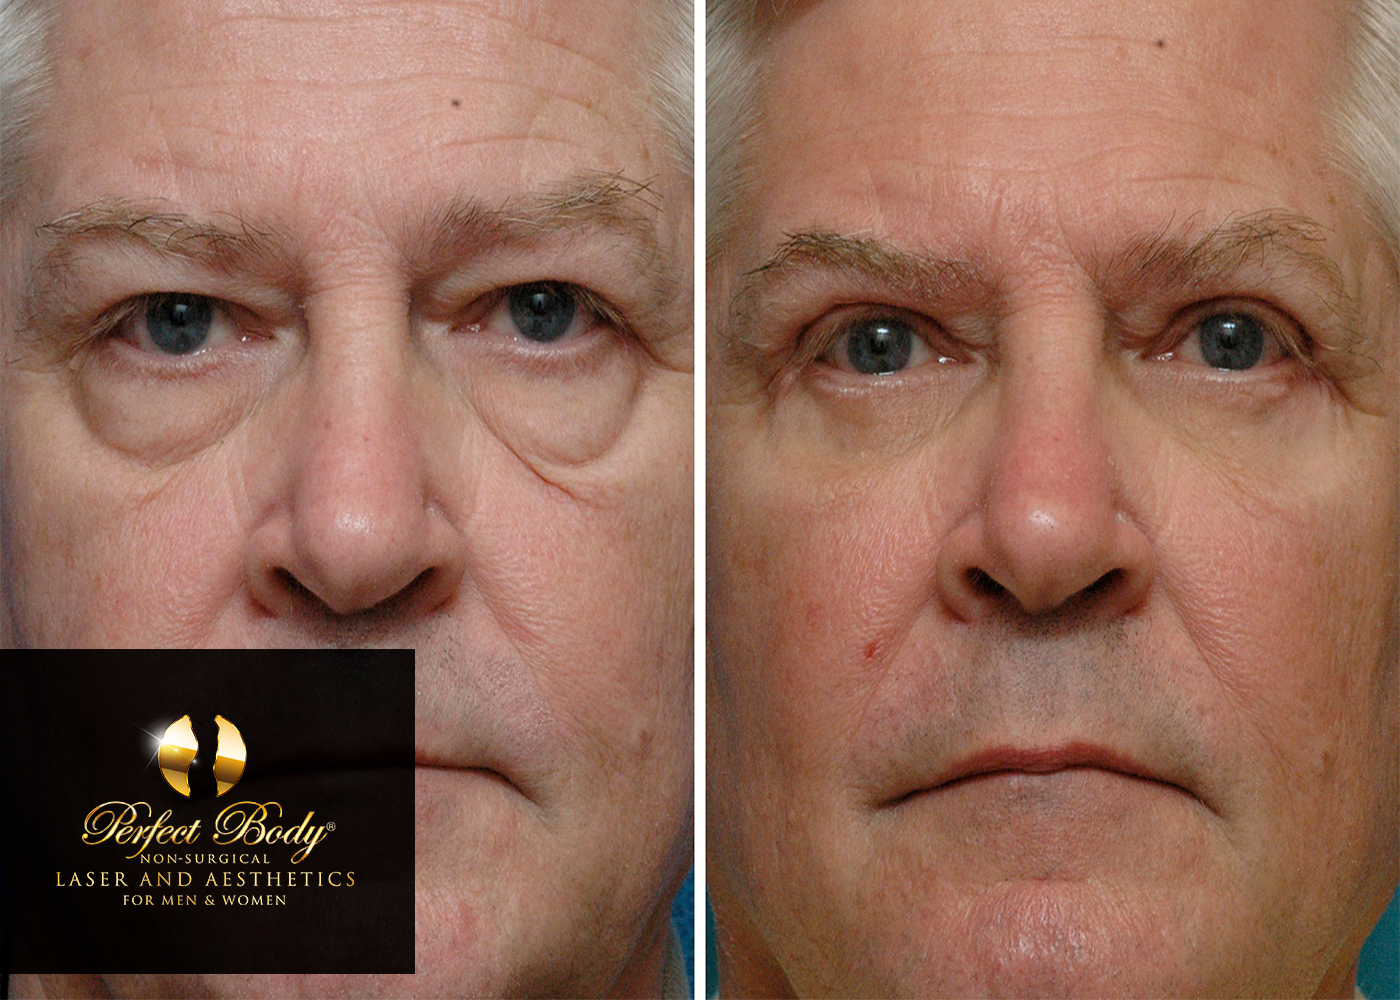 Ultherapy Laser Skin Tightening For The Face